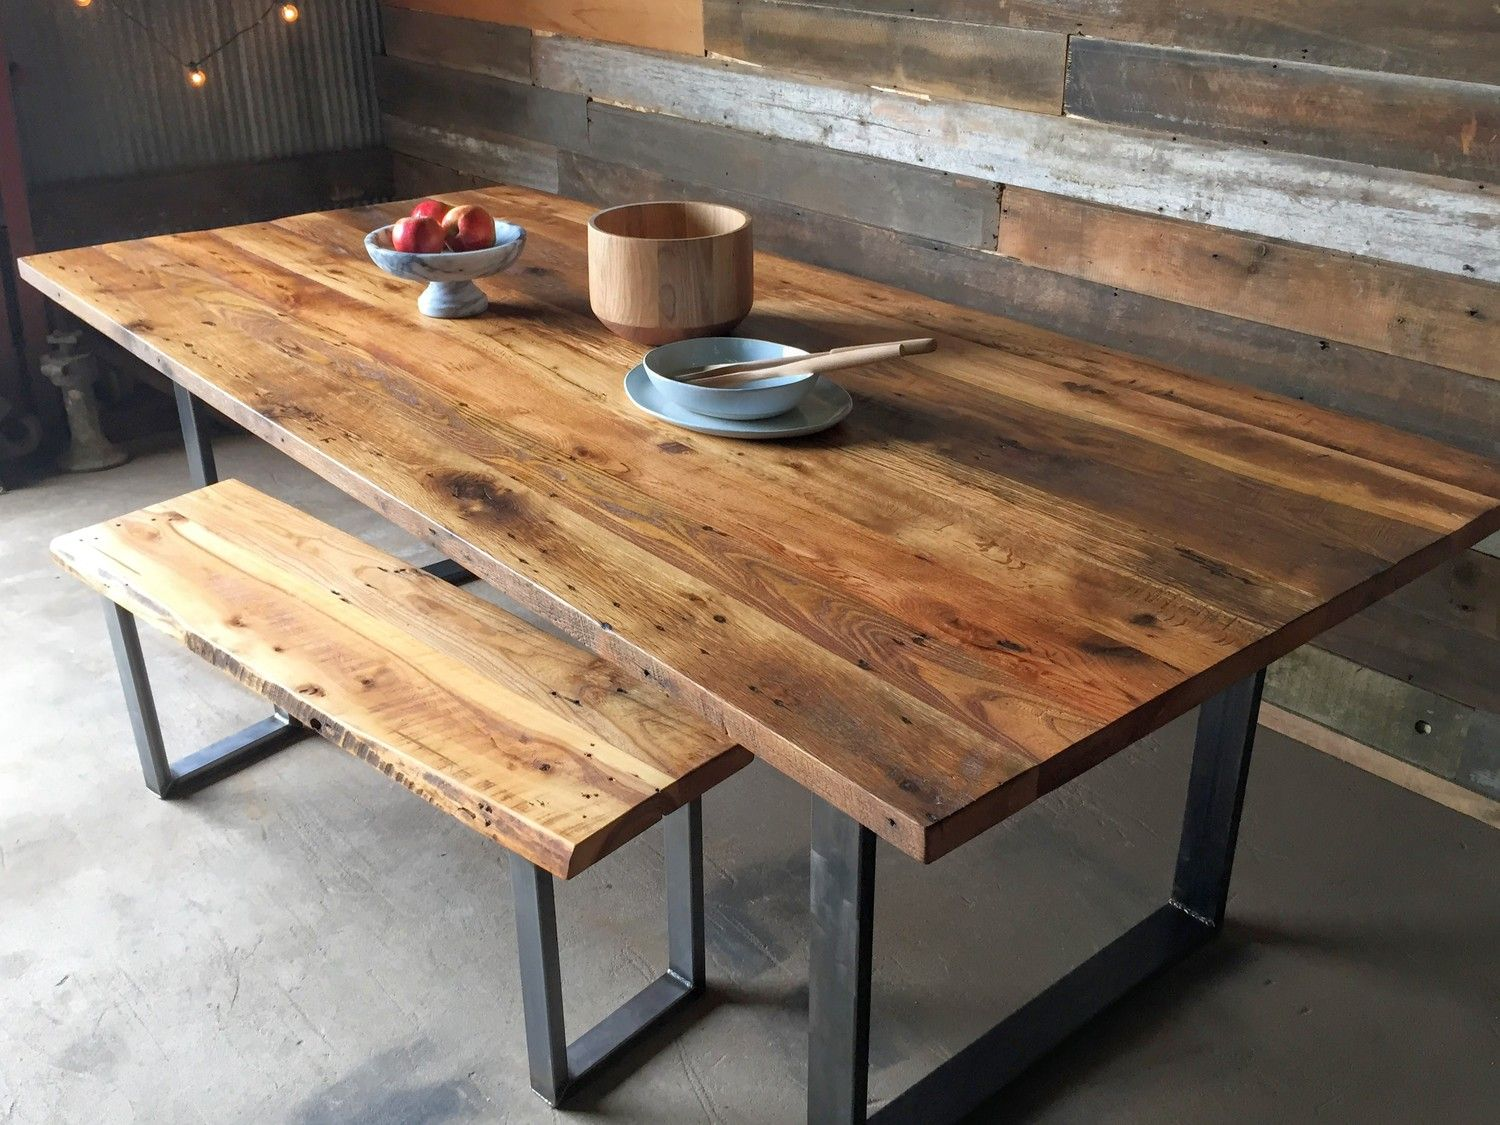 Merveilleux Reclaimed Wood Dining Table